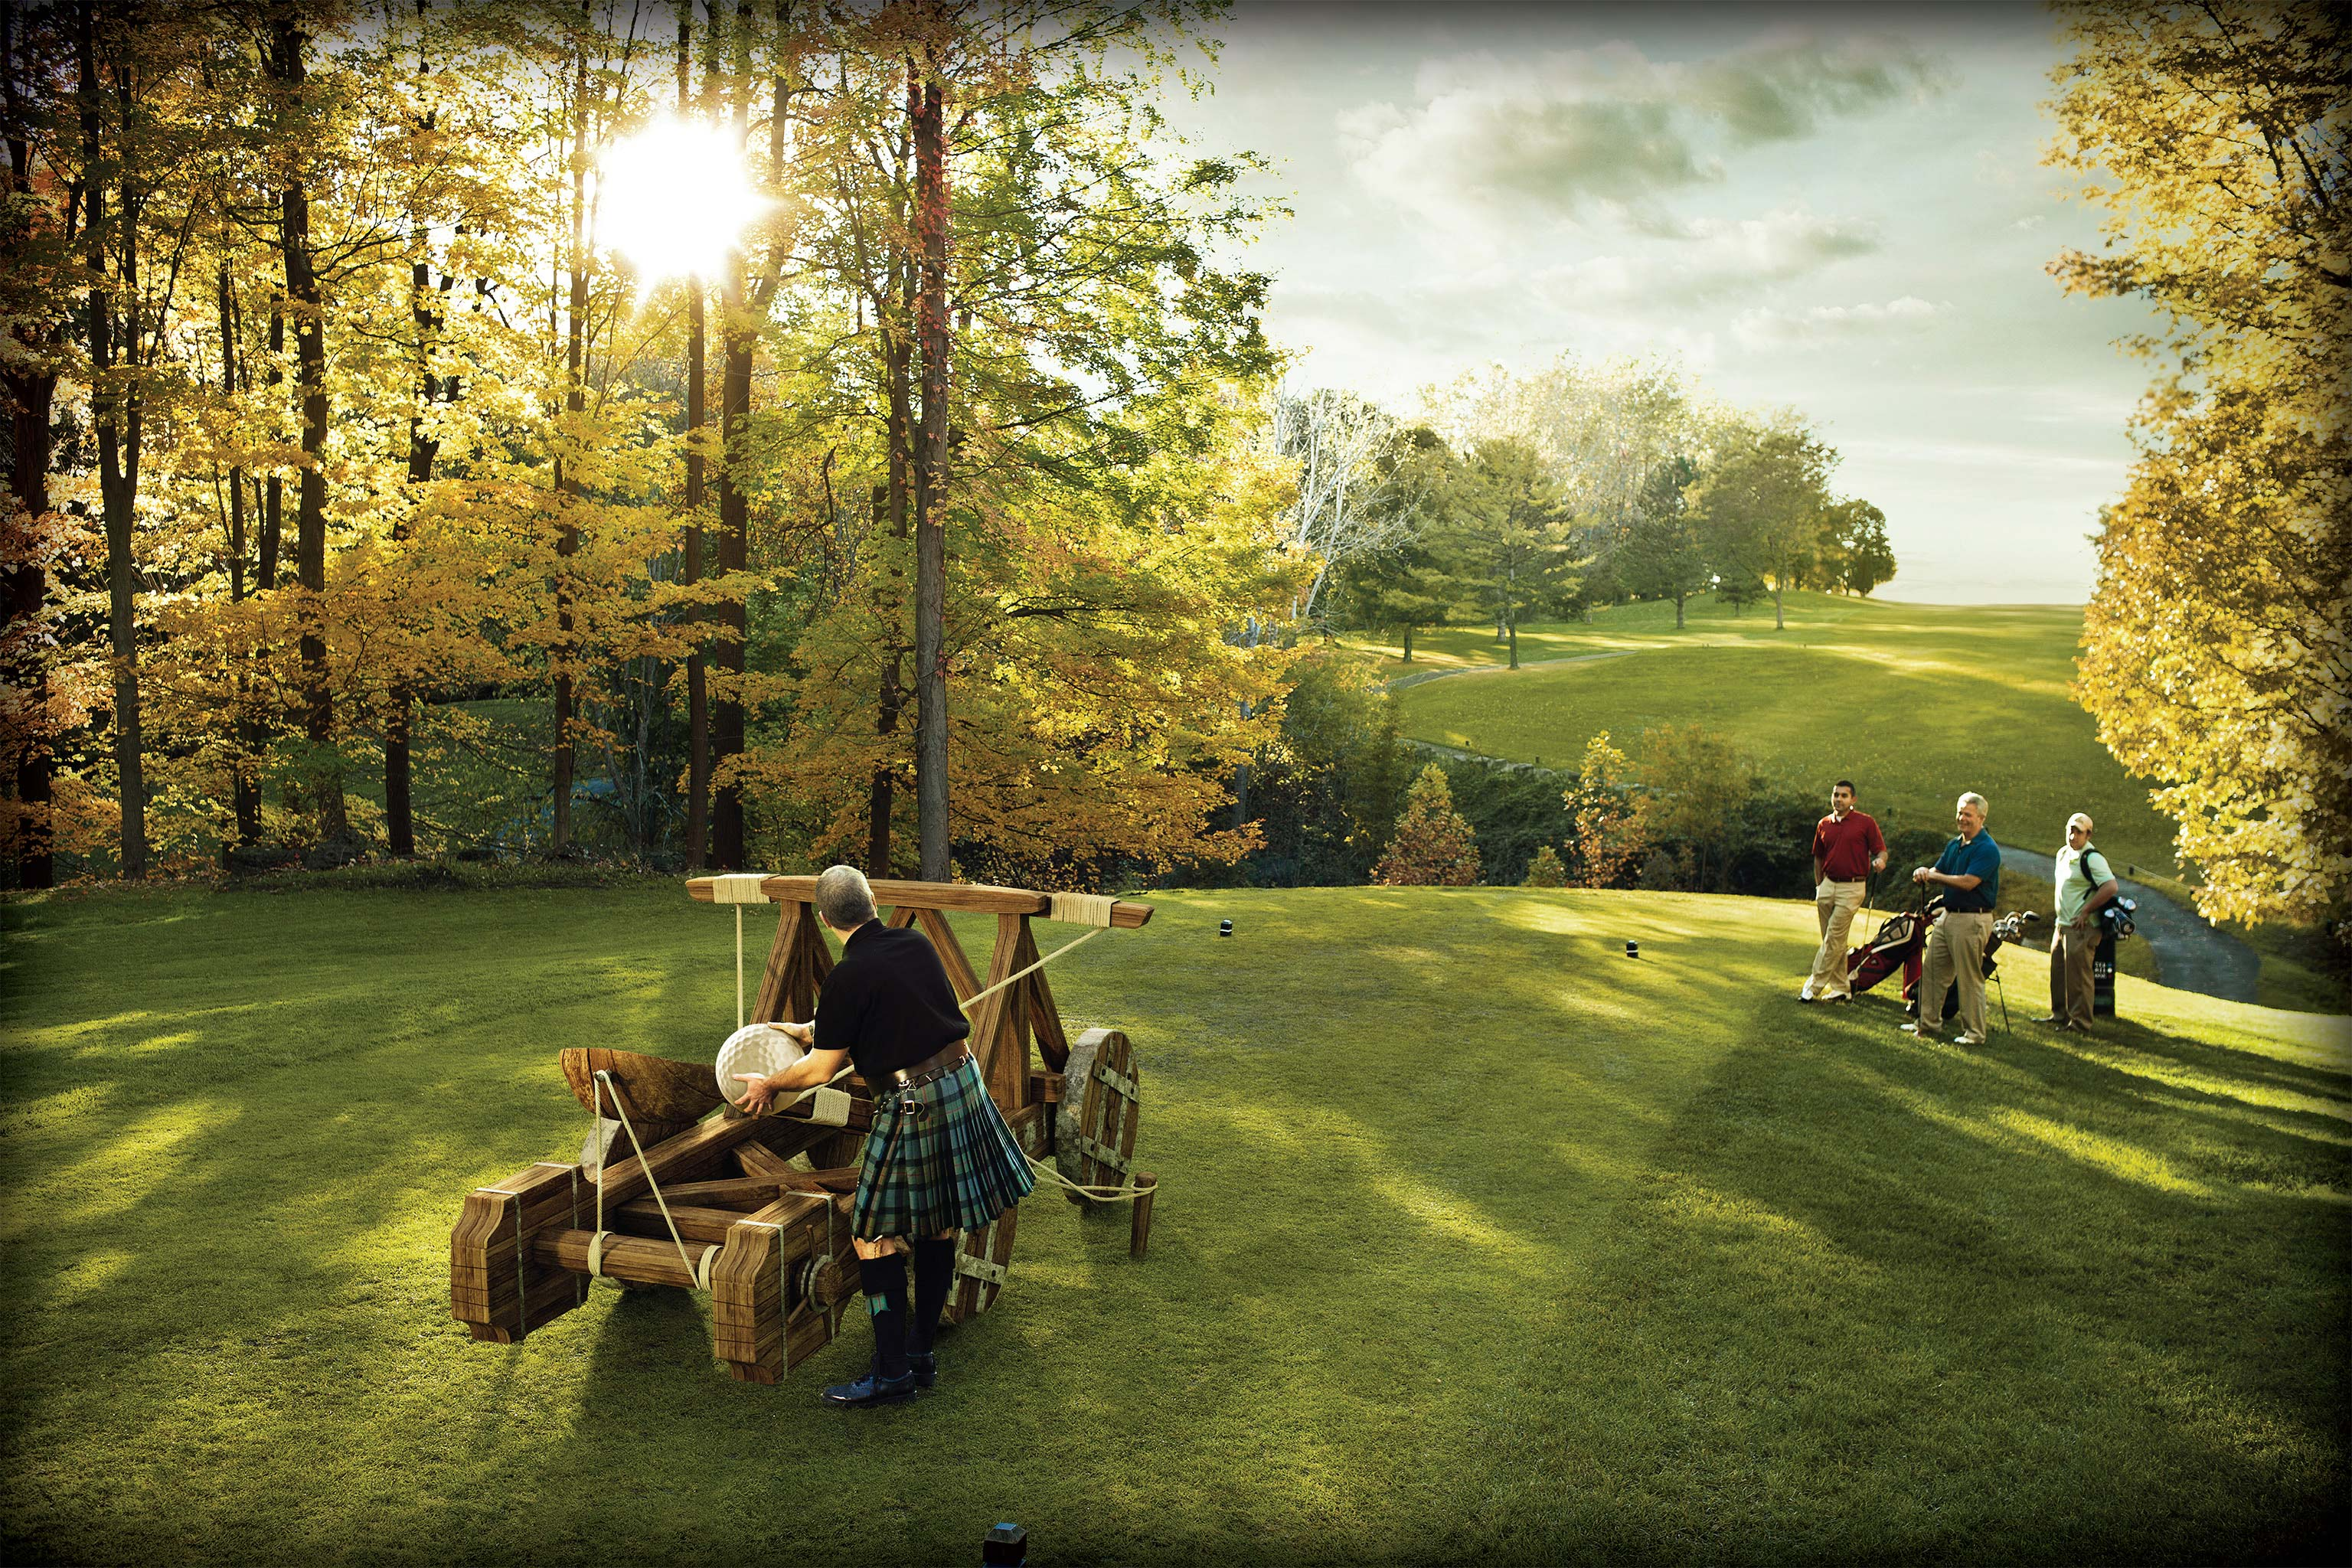 middleages golf